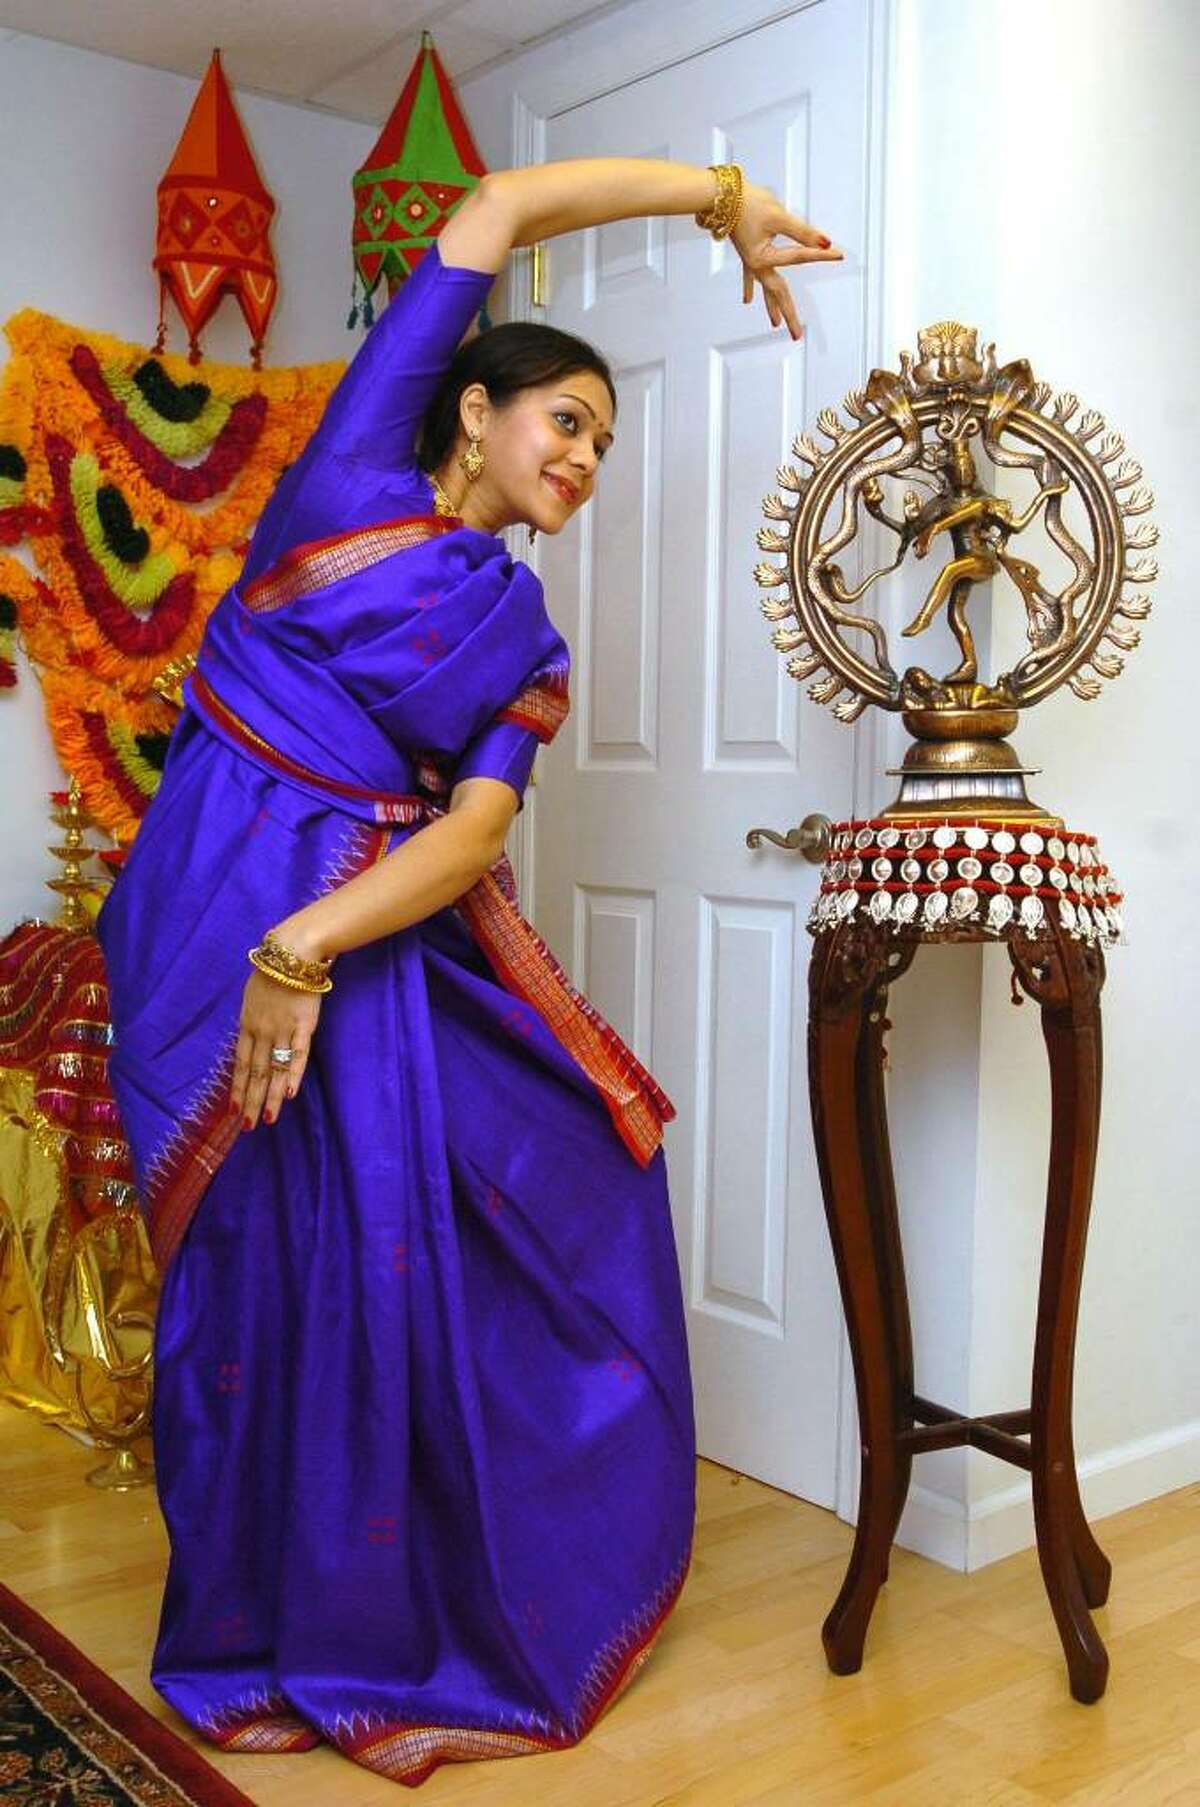 Anindita Nanda, of Danbury, photographed at her home practicing a form of dance called Odissi Classical in her pracitce Sari Thursday, Jan. 7, 2009.